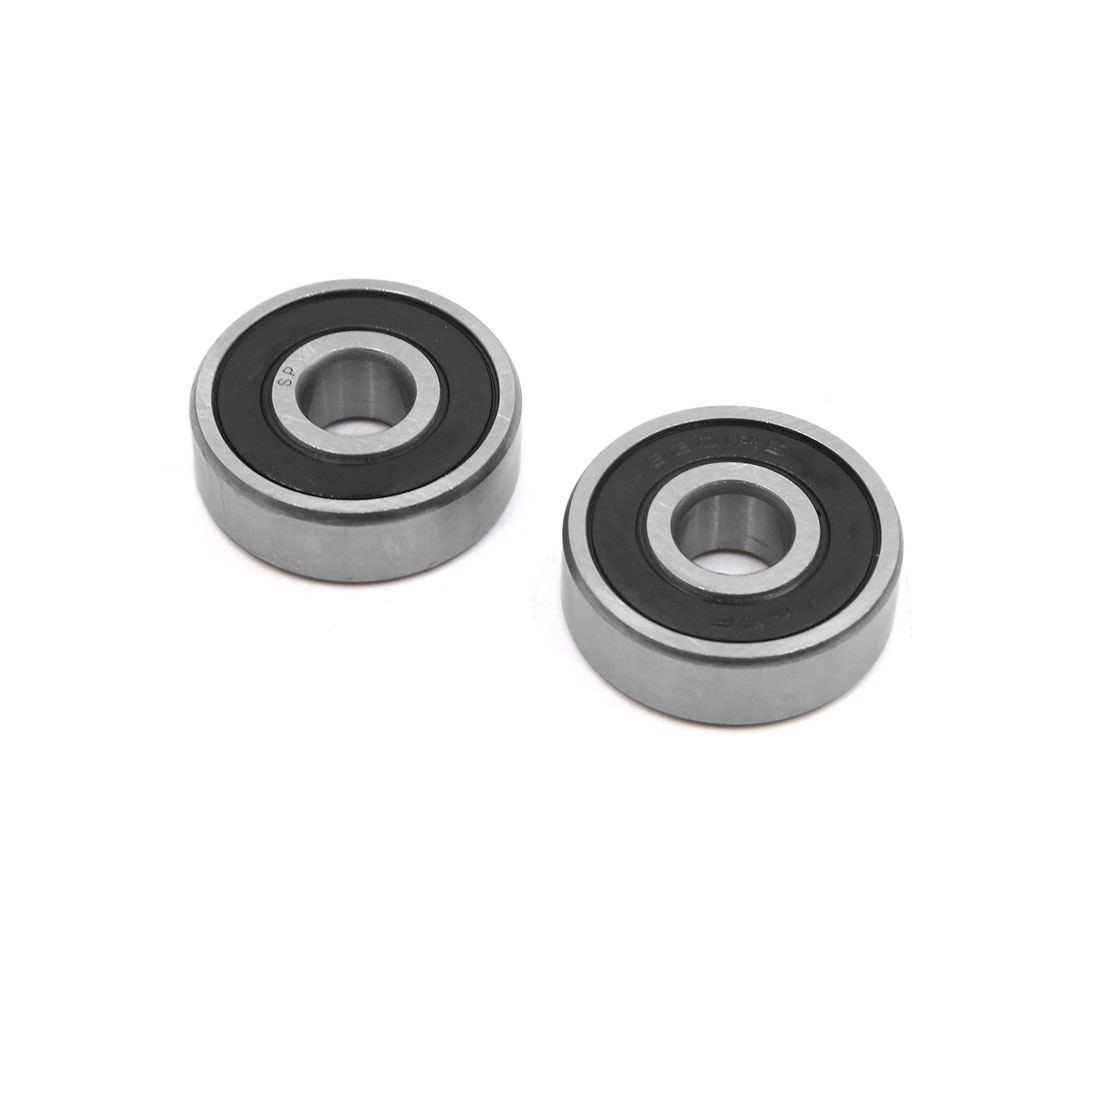 2pcs 6301-2RS Scooter Motorcycle Sealed Deep Groove Ball Bearing 37 x 12 x 12mm